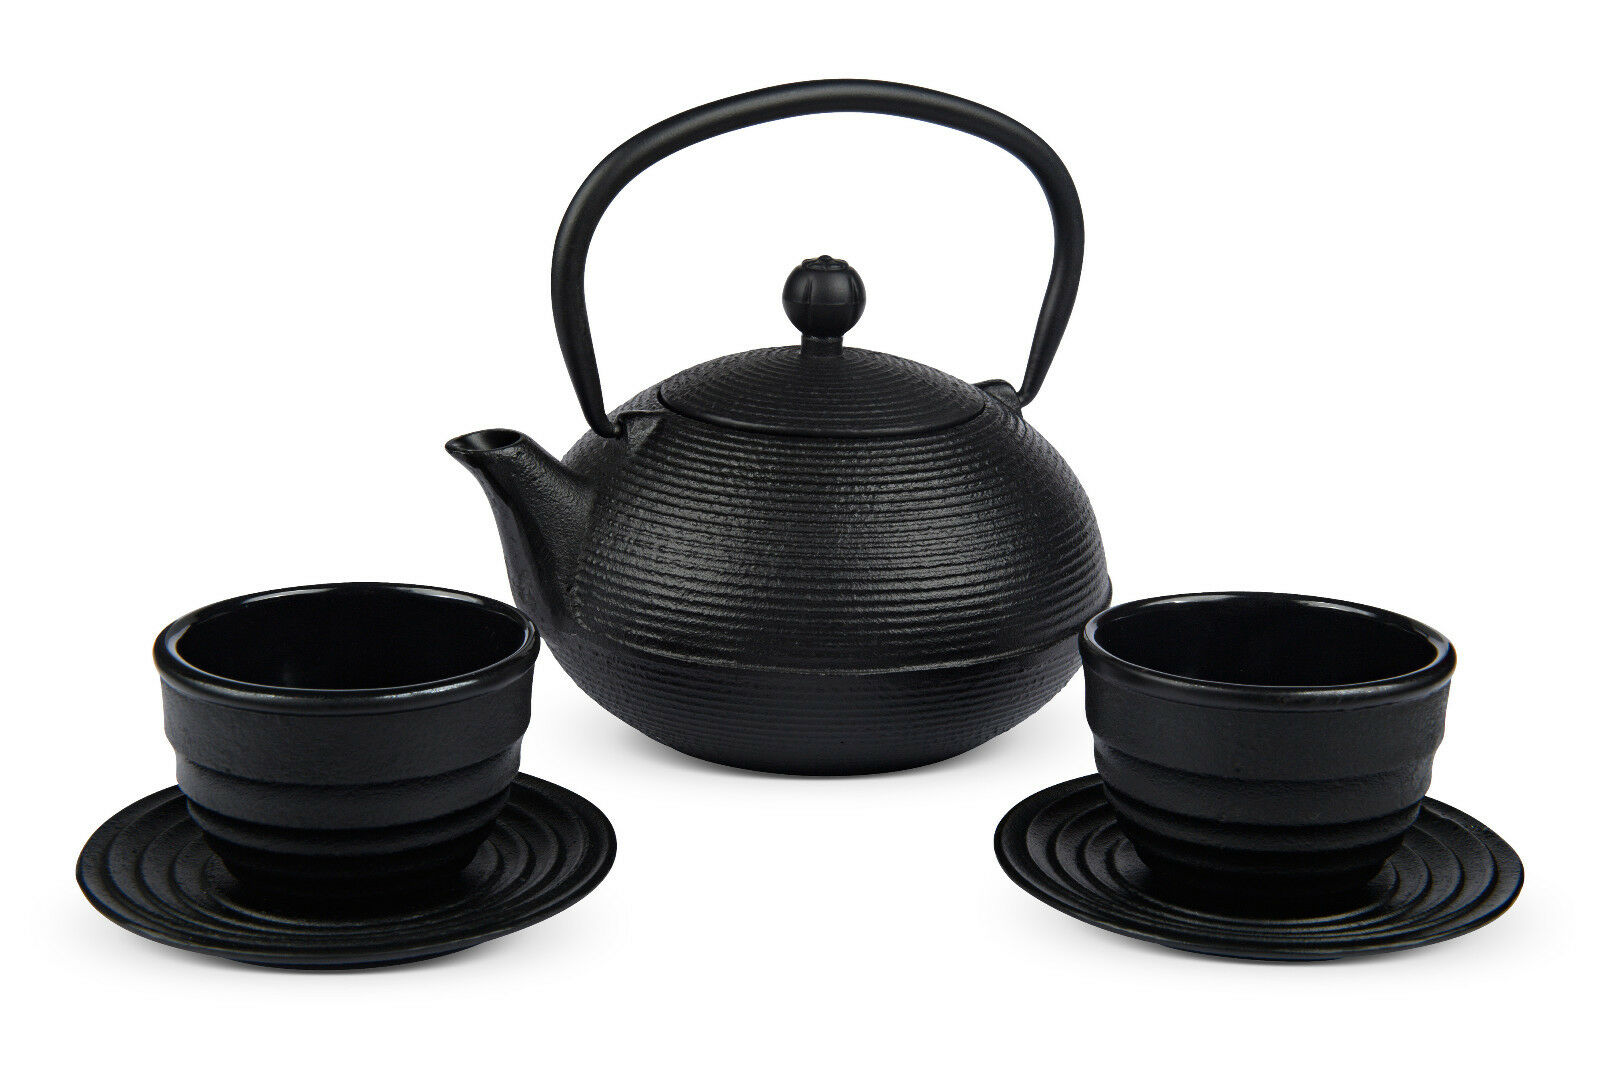 Japan Design - Set Gusseisen Teekanne Iruma 0,9 ltr. schwarz + 2 Teacup-Sets